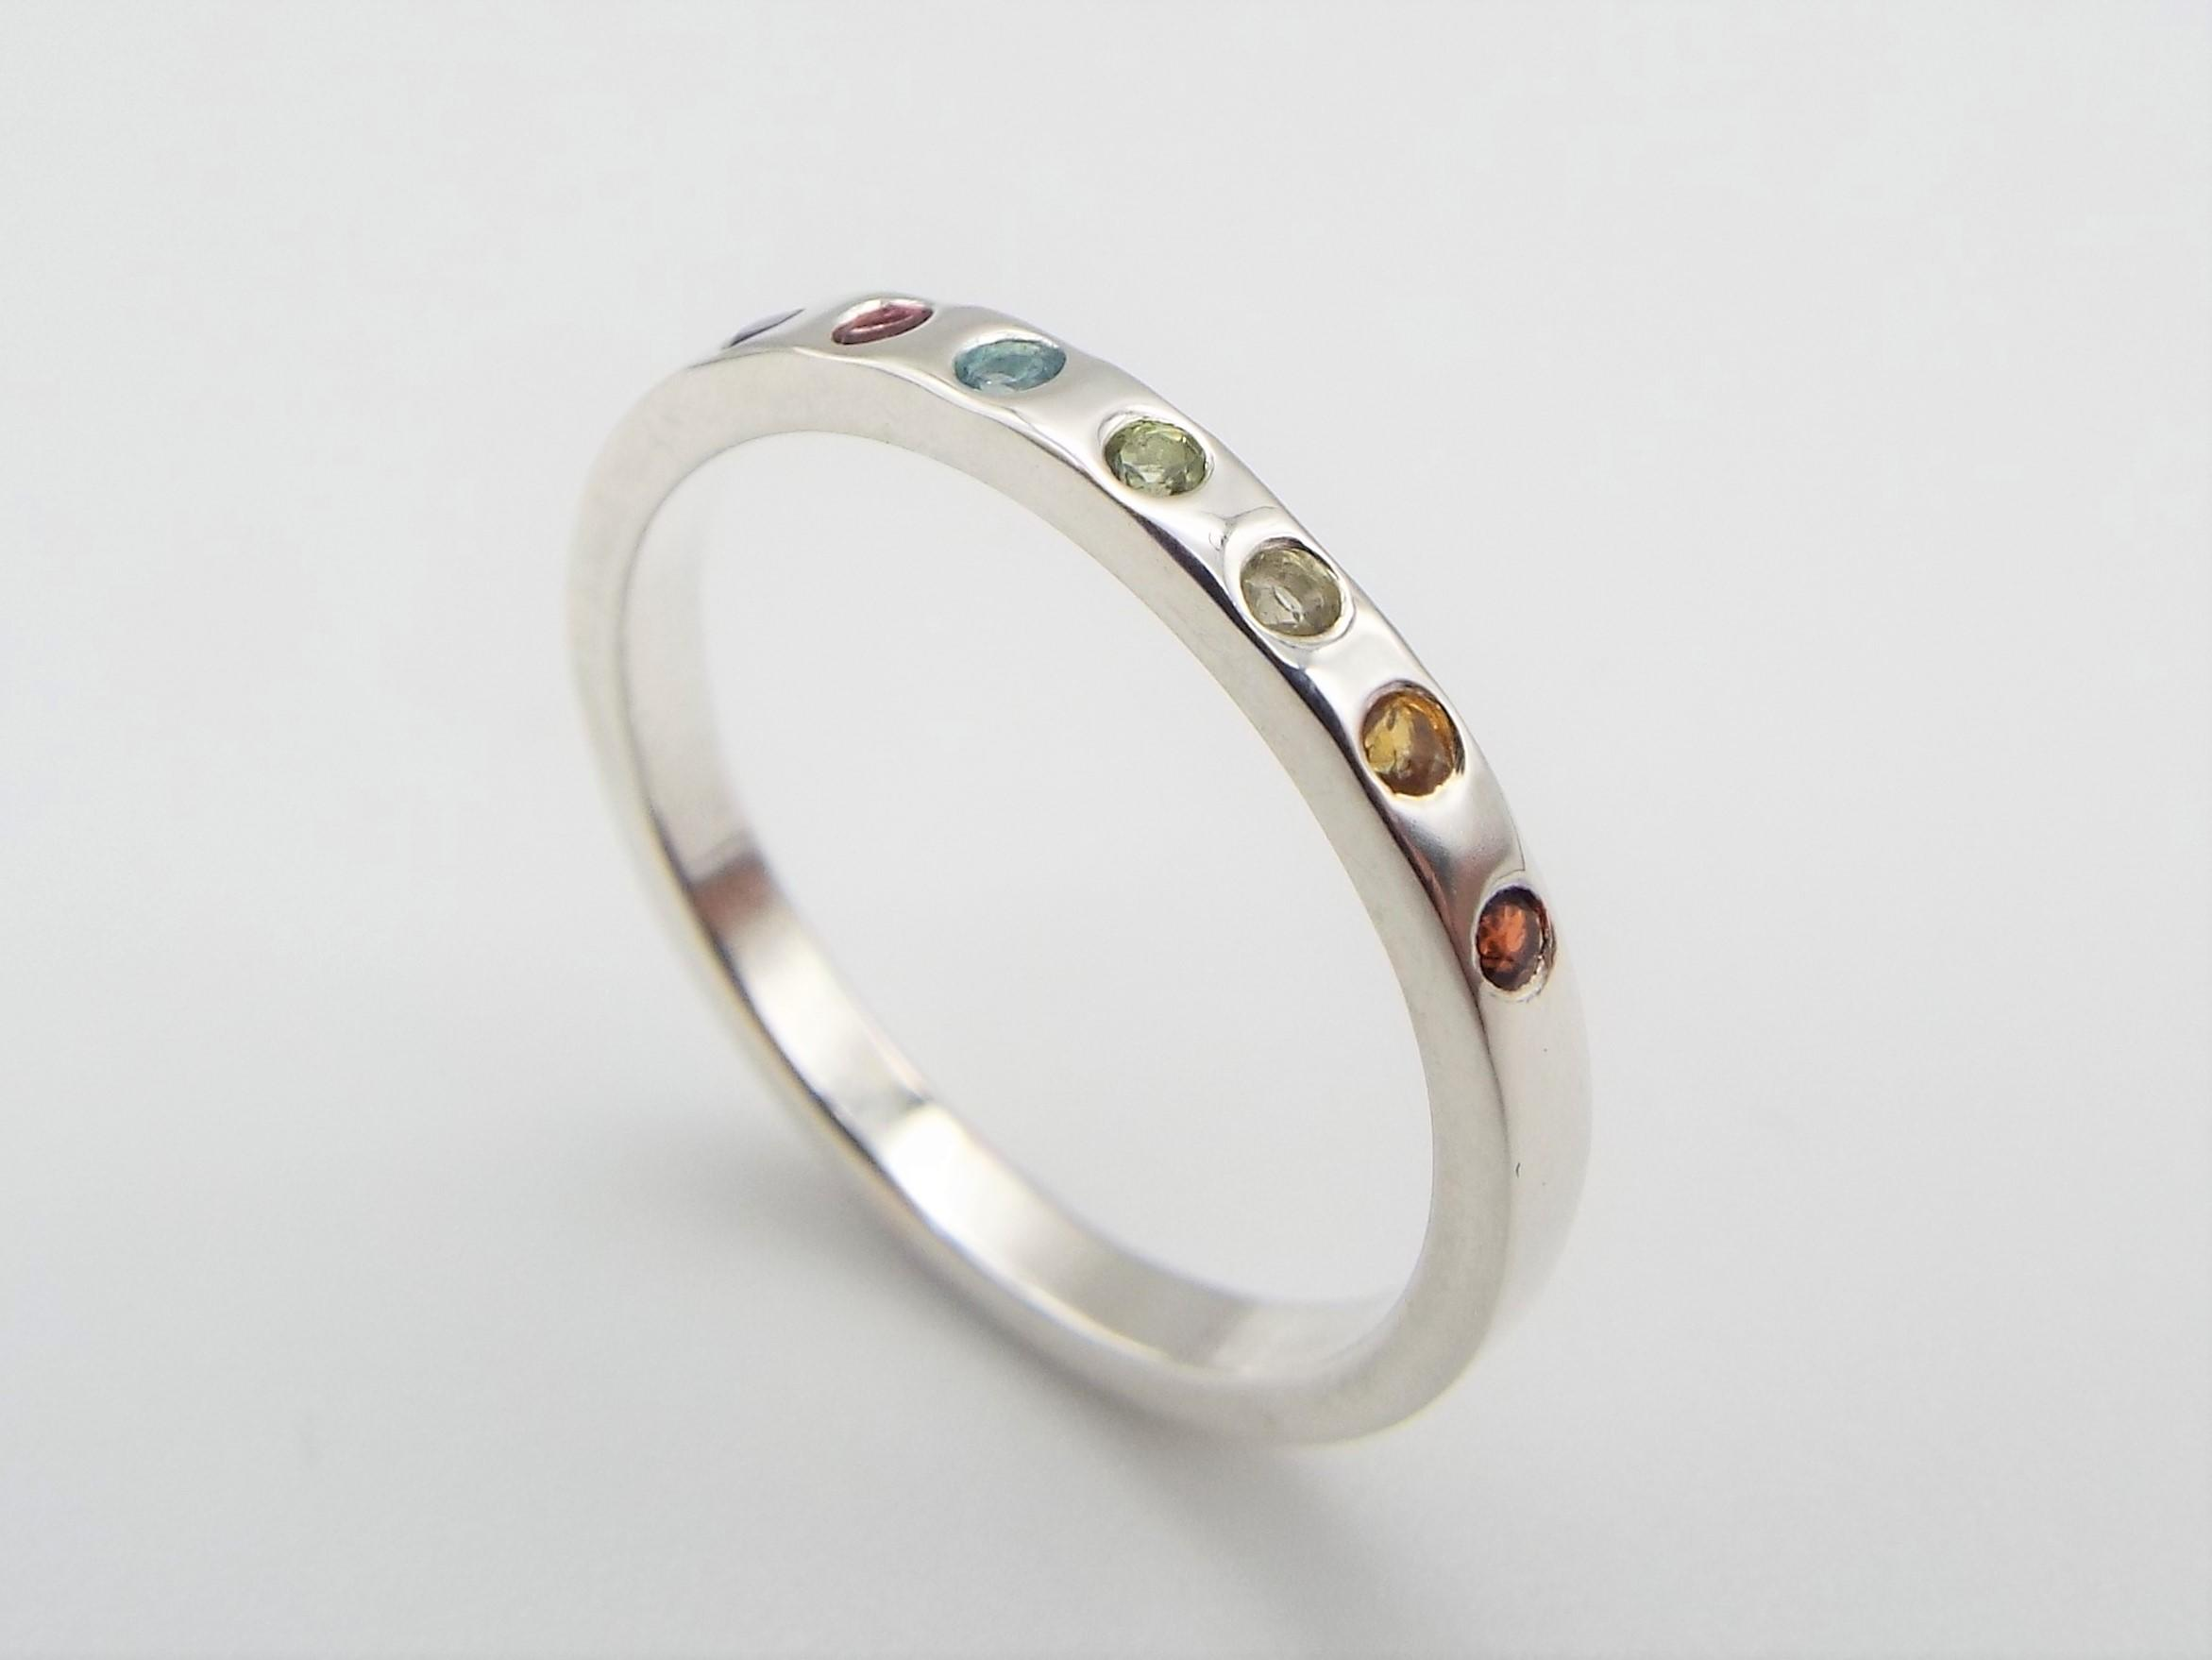 silver ring set with rainbow gemstones